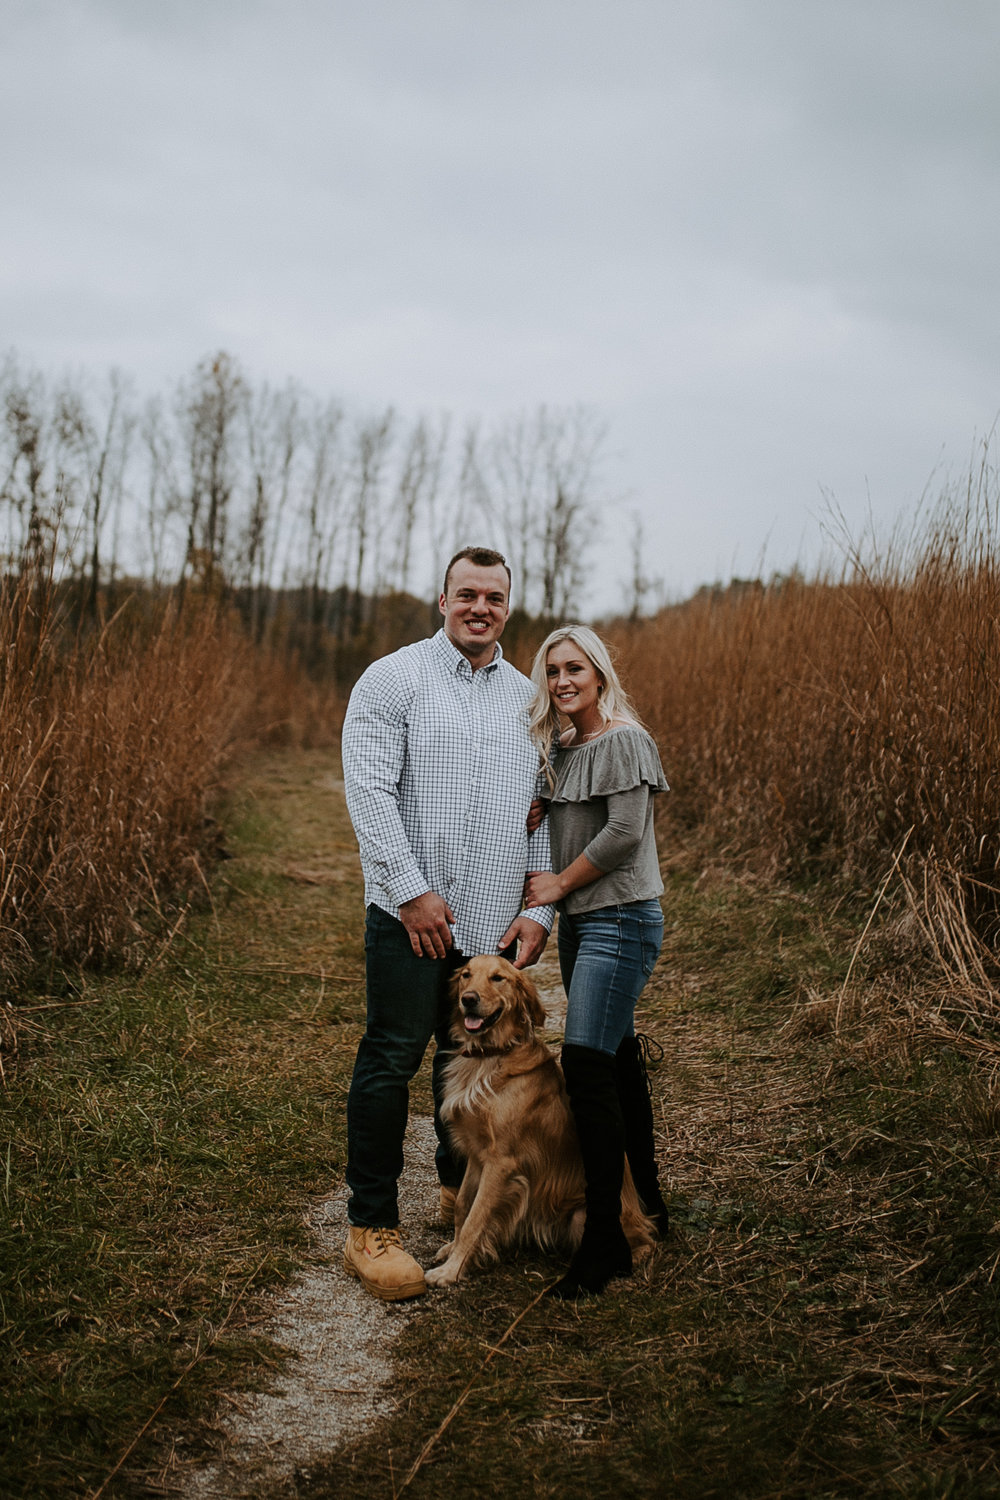 MCKENZIE-RYAN-ENGAGED-REAGANLYNNPHOTOGRAPHY-MUNCIE-INDIANA-BLOOMINGTON-WEDDINGS-16.jpg